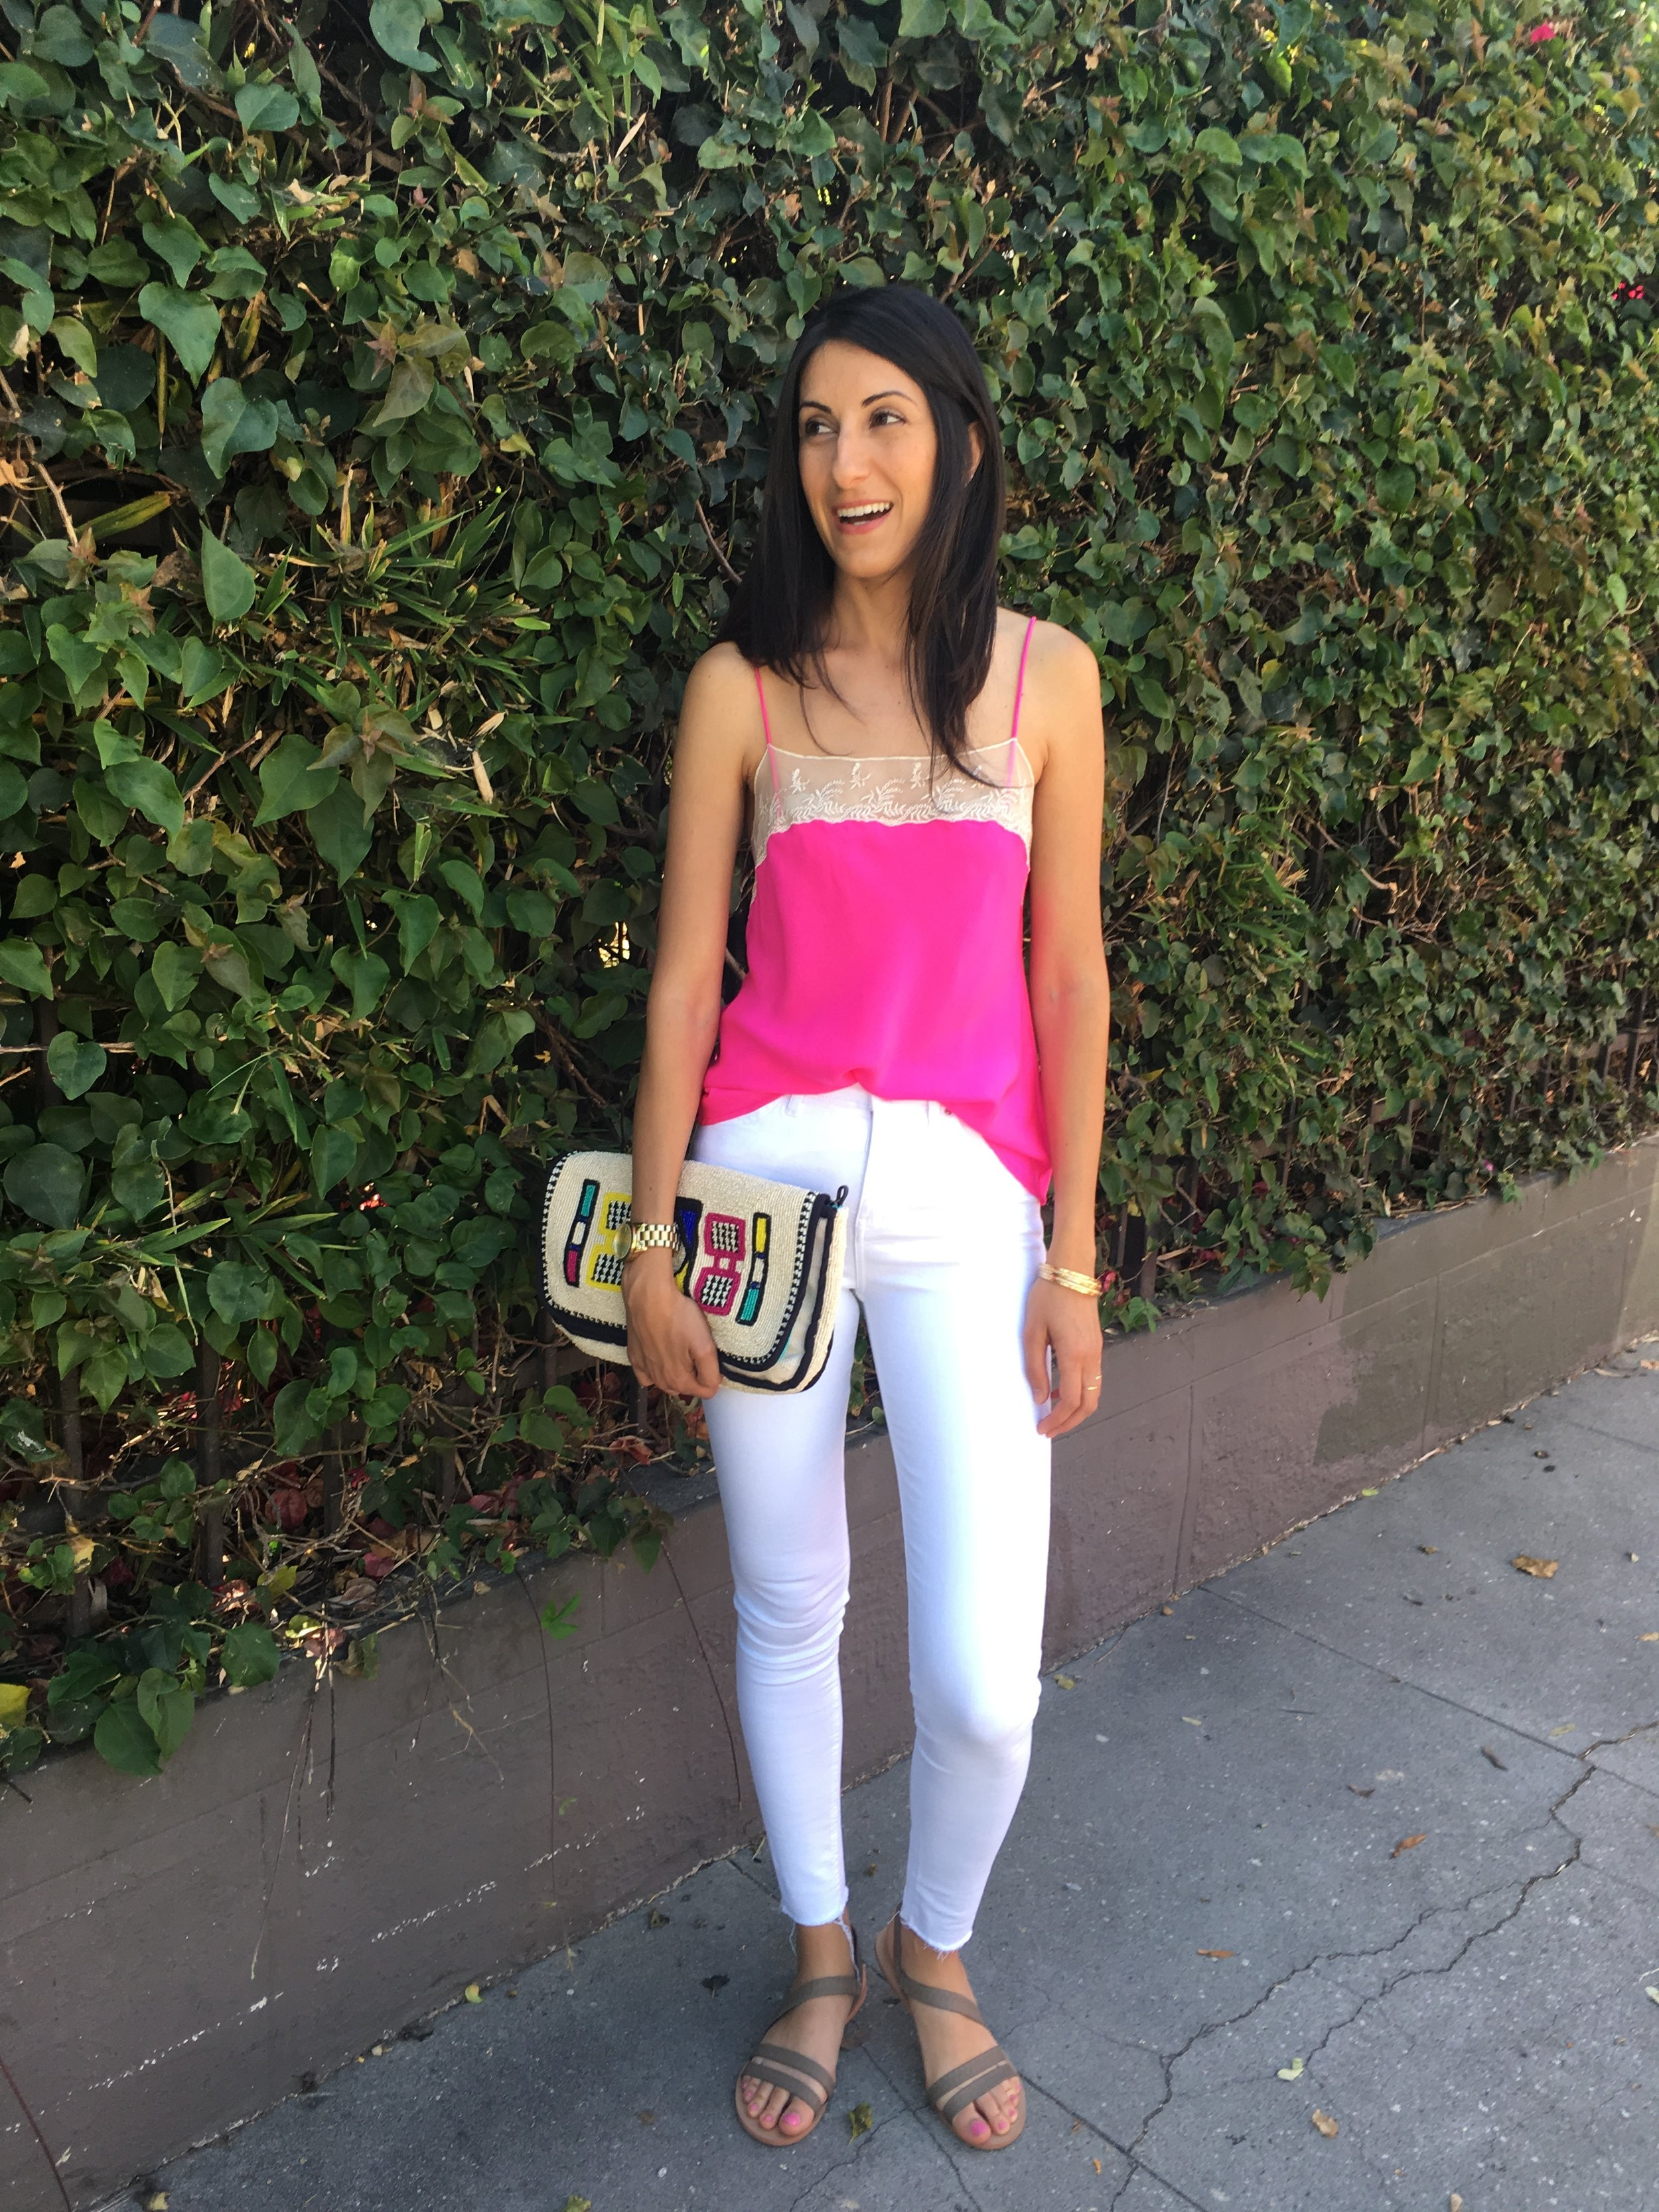 Urban Outfitters magenta silky camisole - Summer style- White jeans, neutral sandals. Have fun! =)